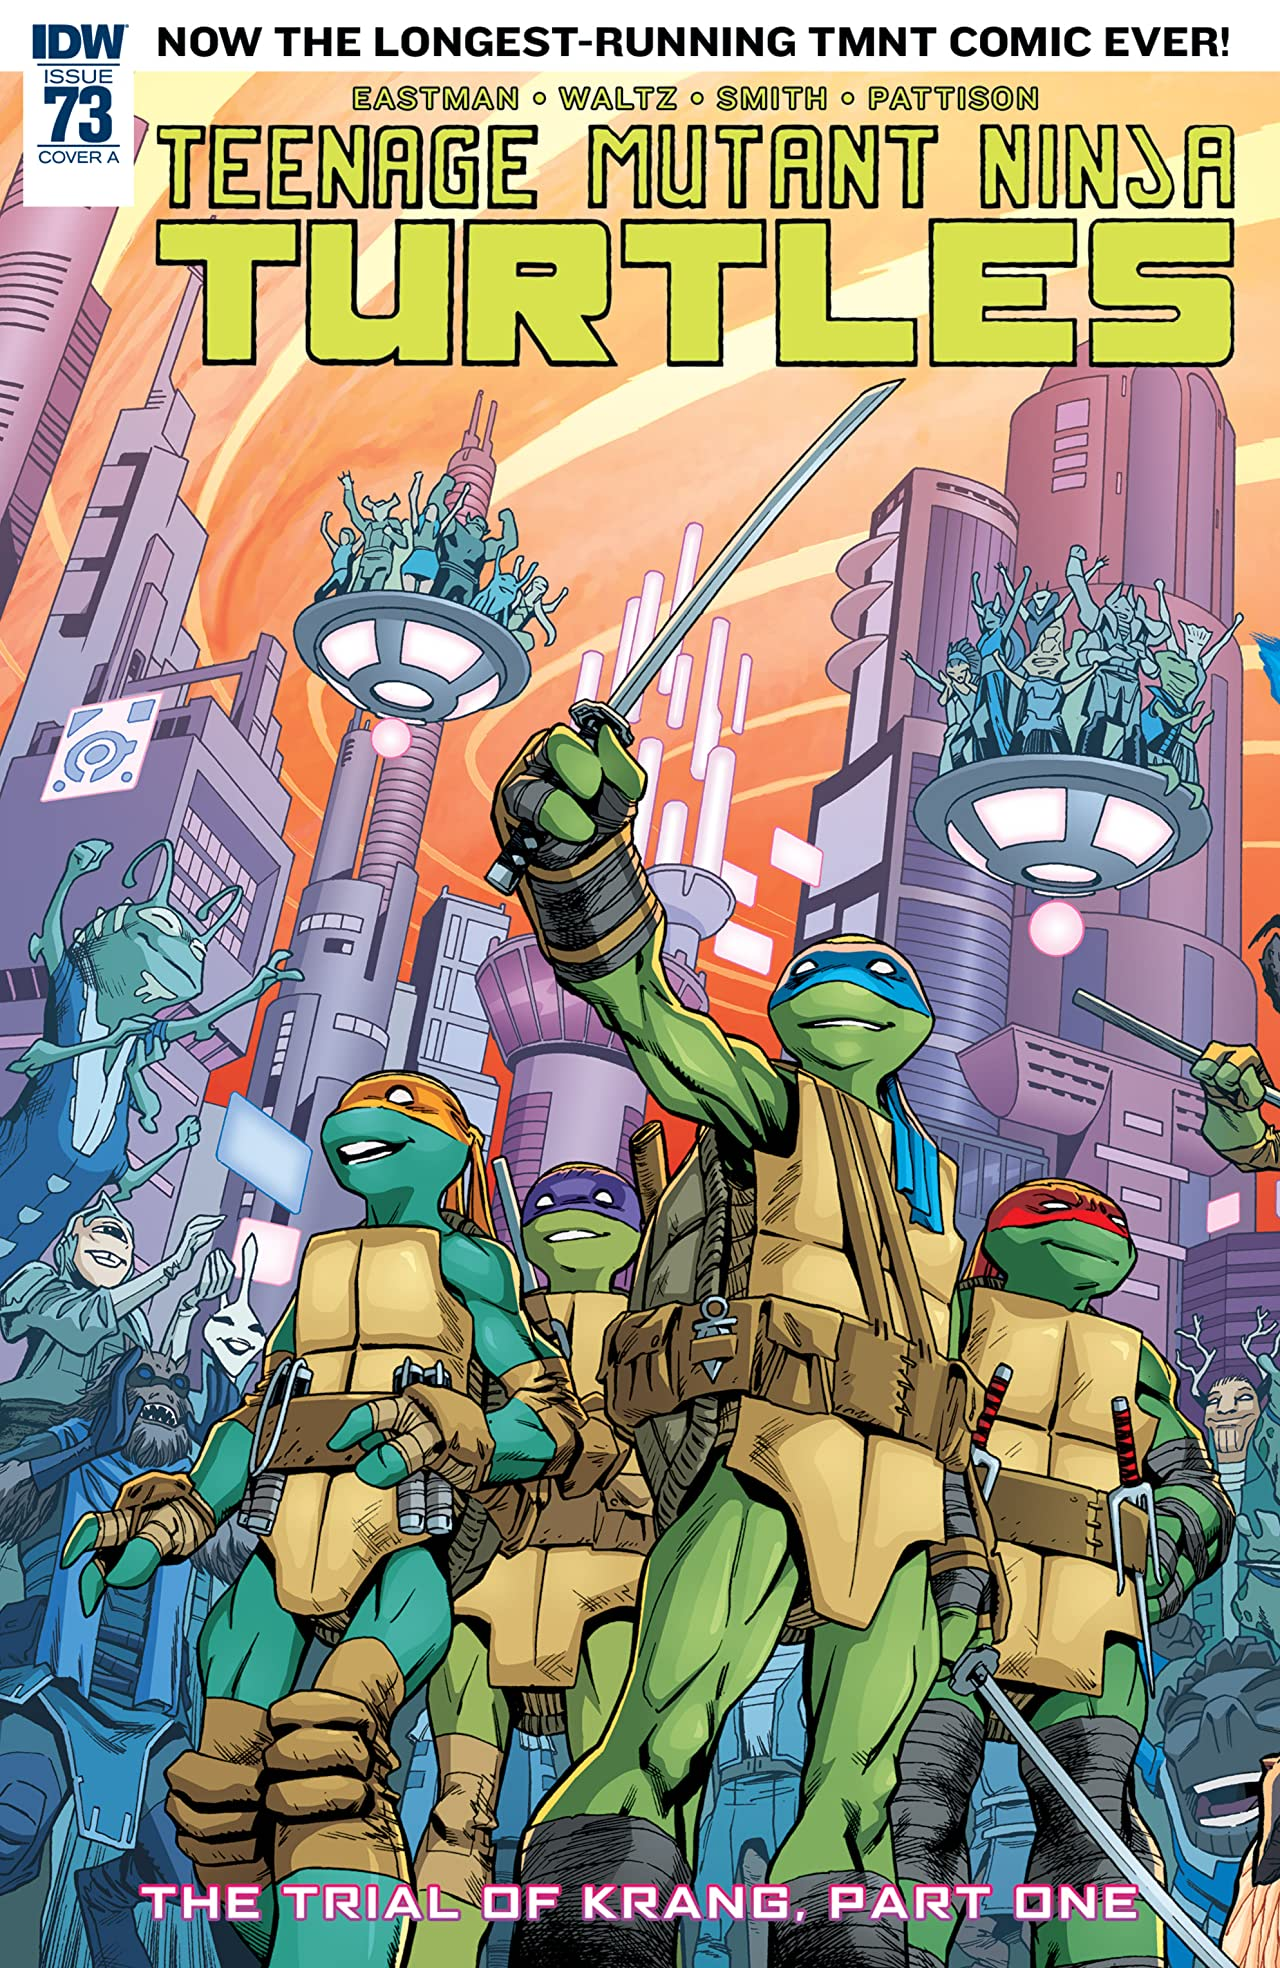 Teenage Mutant Ninja Turtles #73